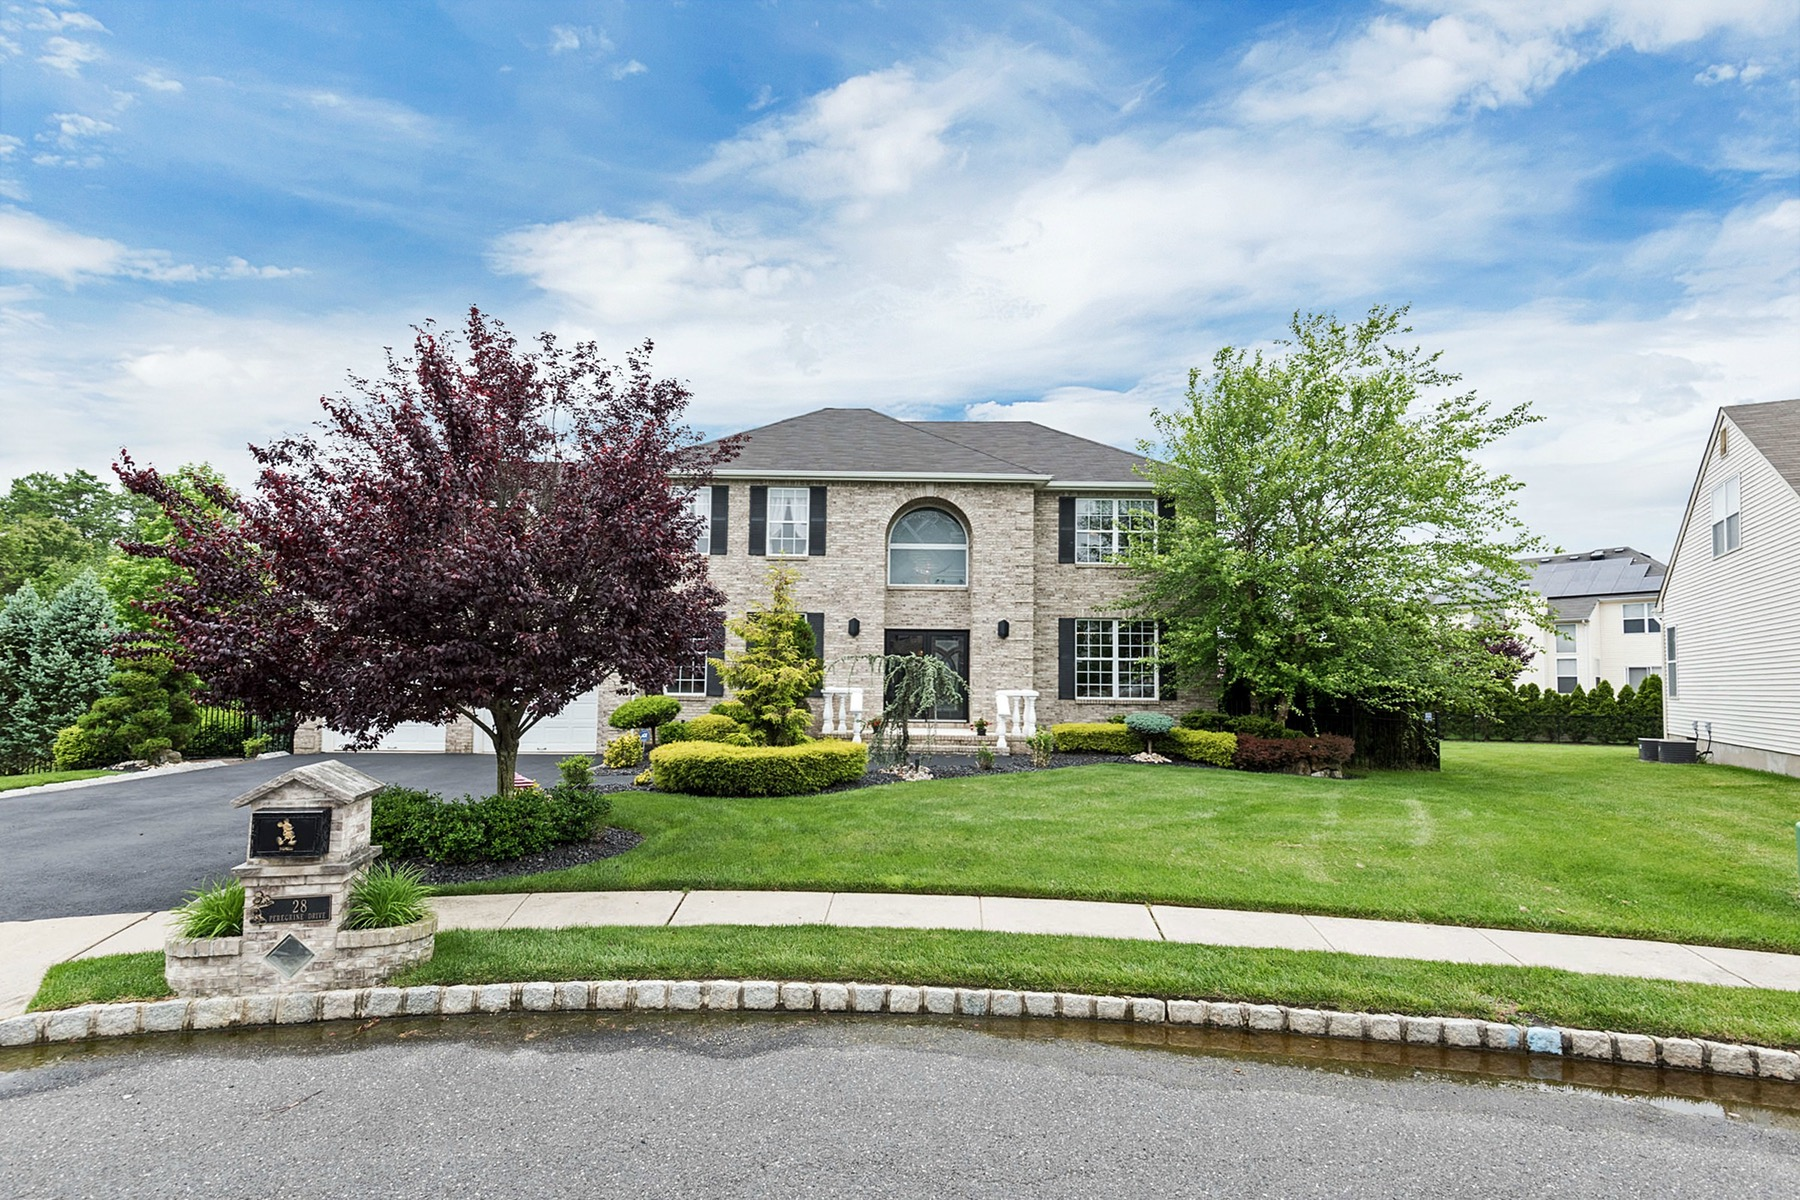 Single Family Home for Sale at Desirable Eagles Nest 28 Peregrine Drive Morganville, New Jersey 07751 United States